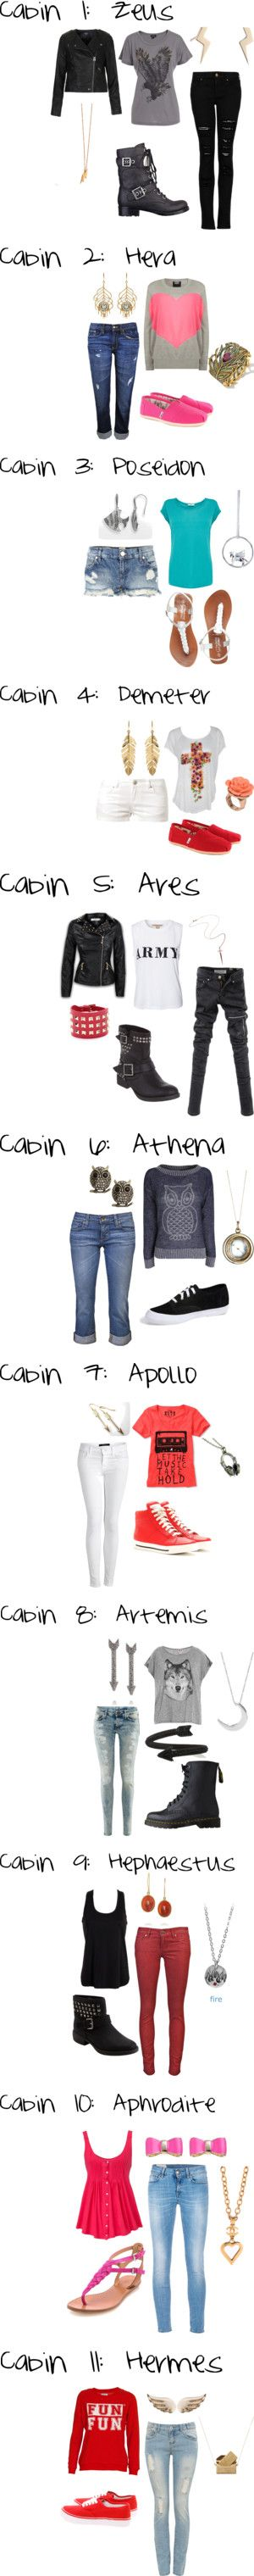 """""""Camp Half-Blood Cabins"""" by kenzie2018 on Polyvore. Why is it not surprising that my fave cabins are also my fave outfits"""